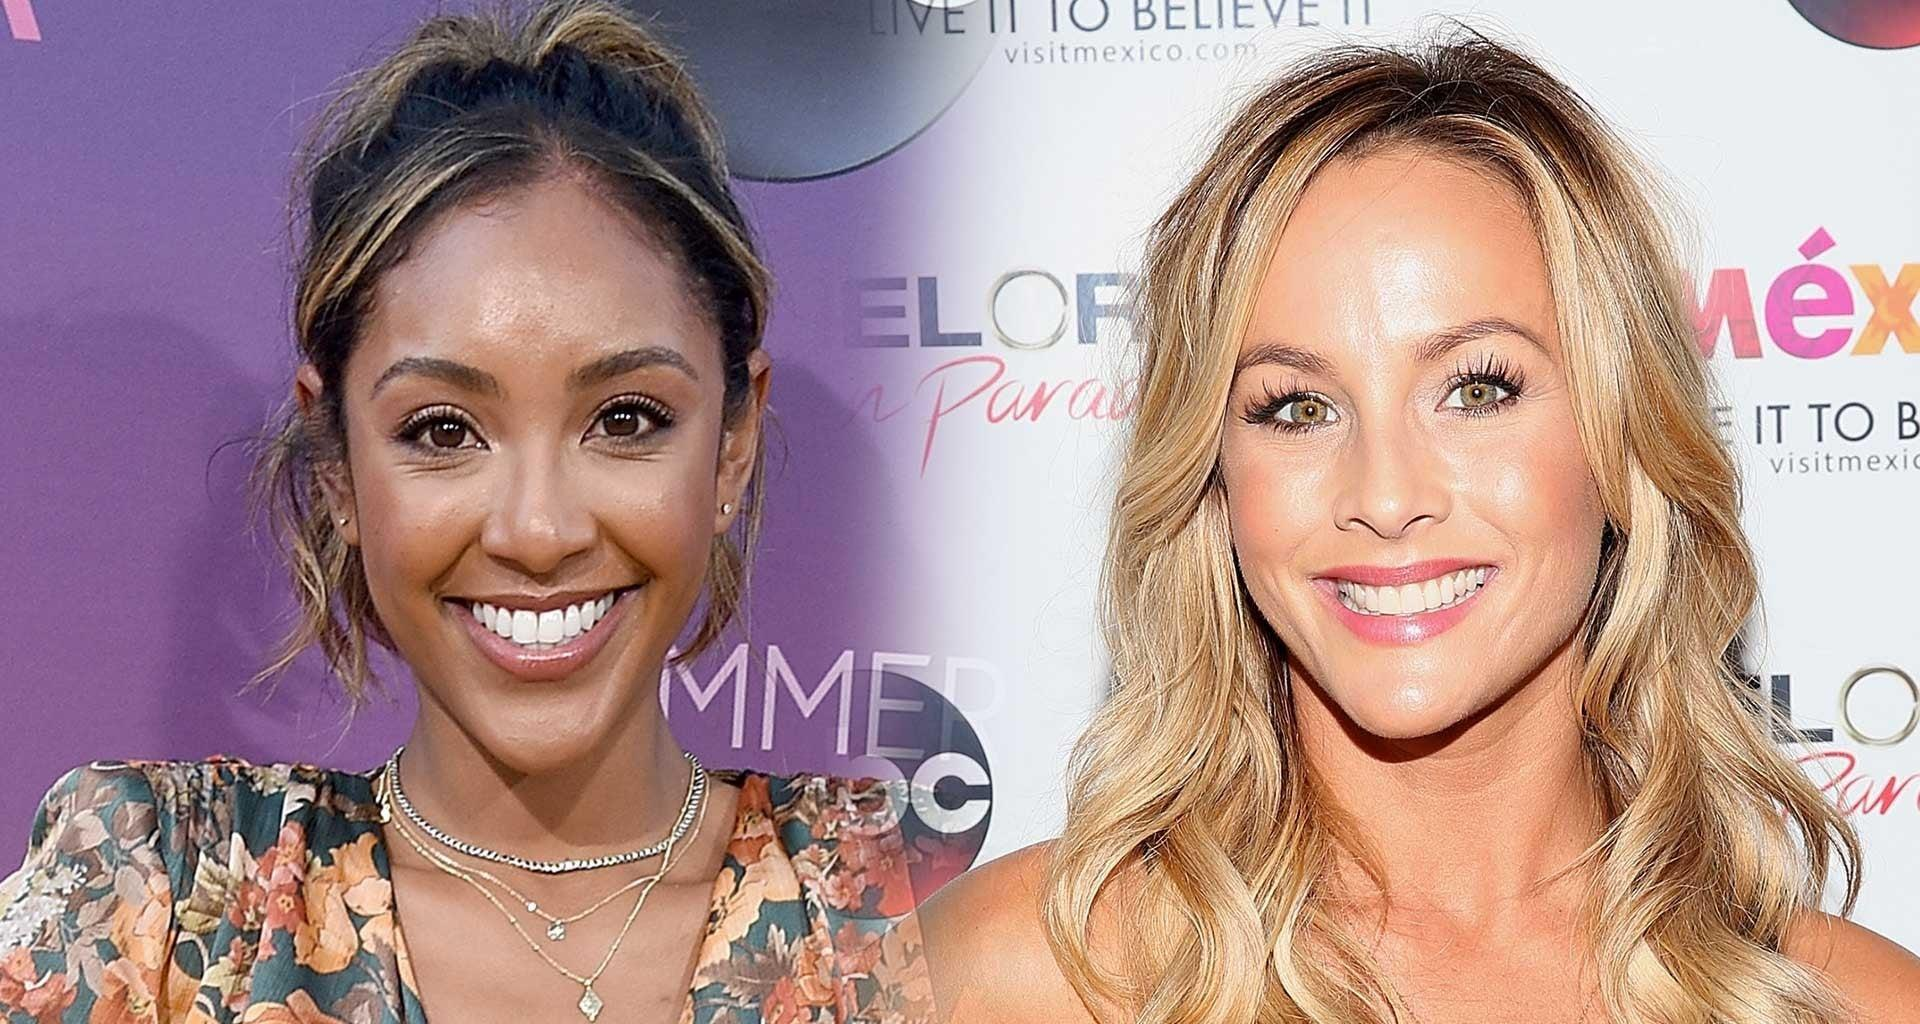 Tayshia Adams Believed To Be The New Bachelorette After Clare Crawley Allegedly Finds Love And Leaves The Show